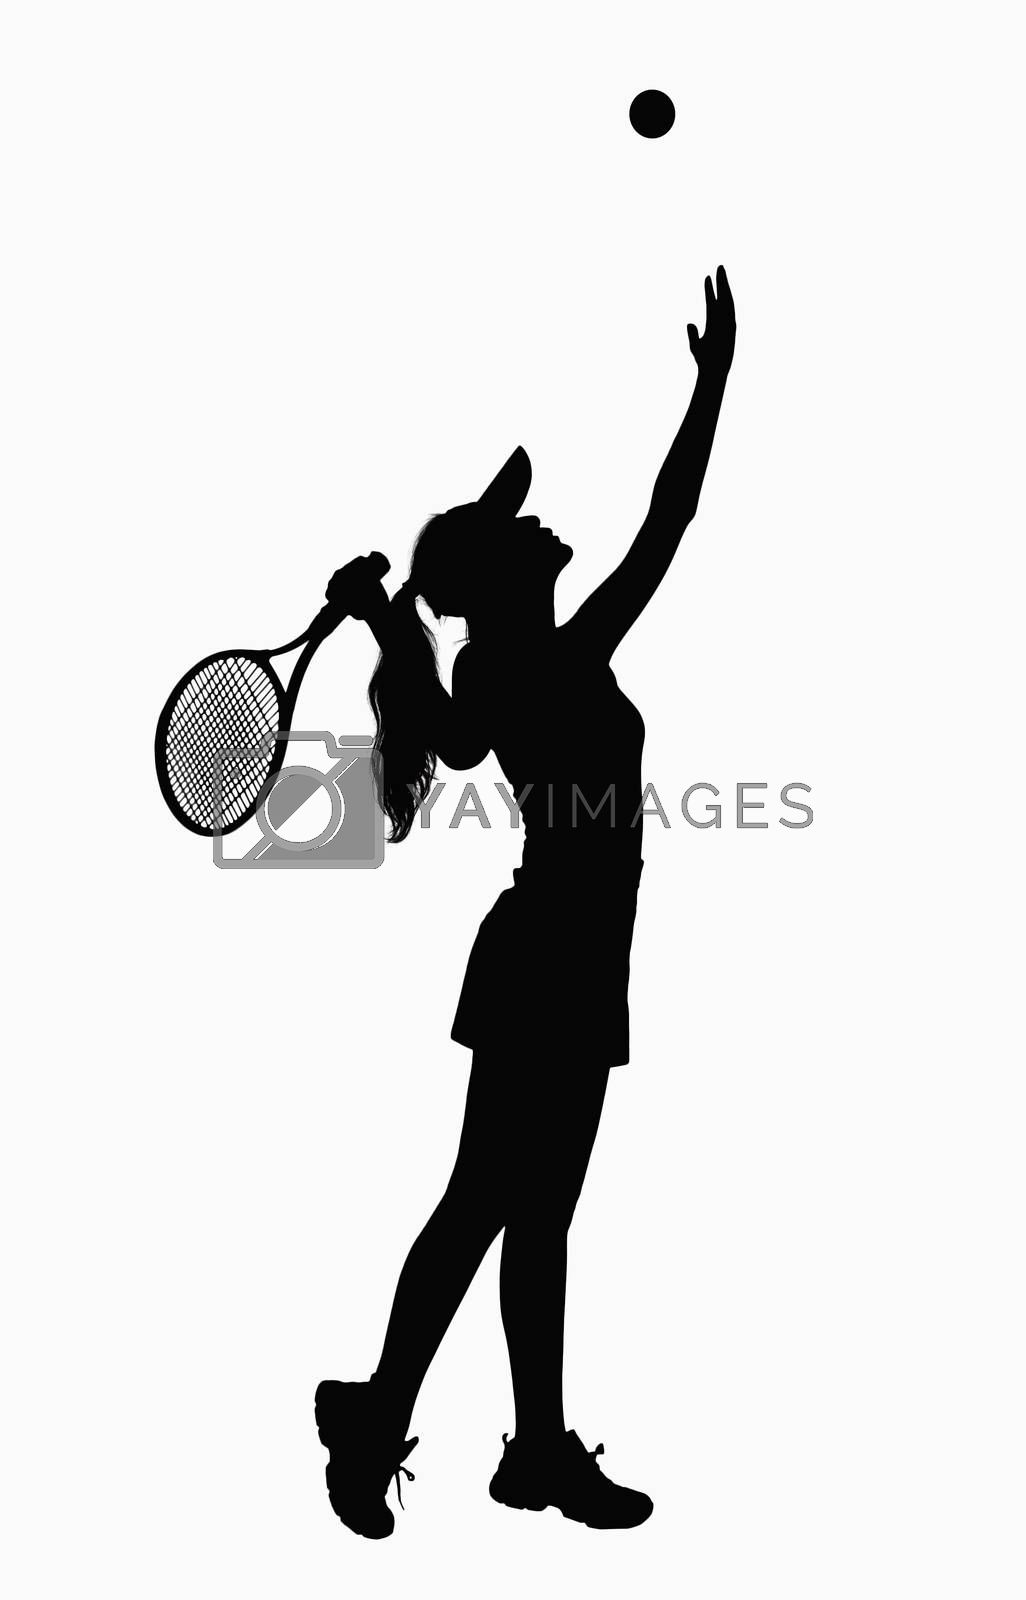 Silhouette of woman with tennis racket, serving.